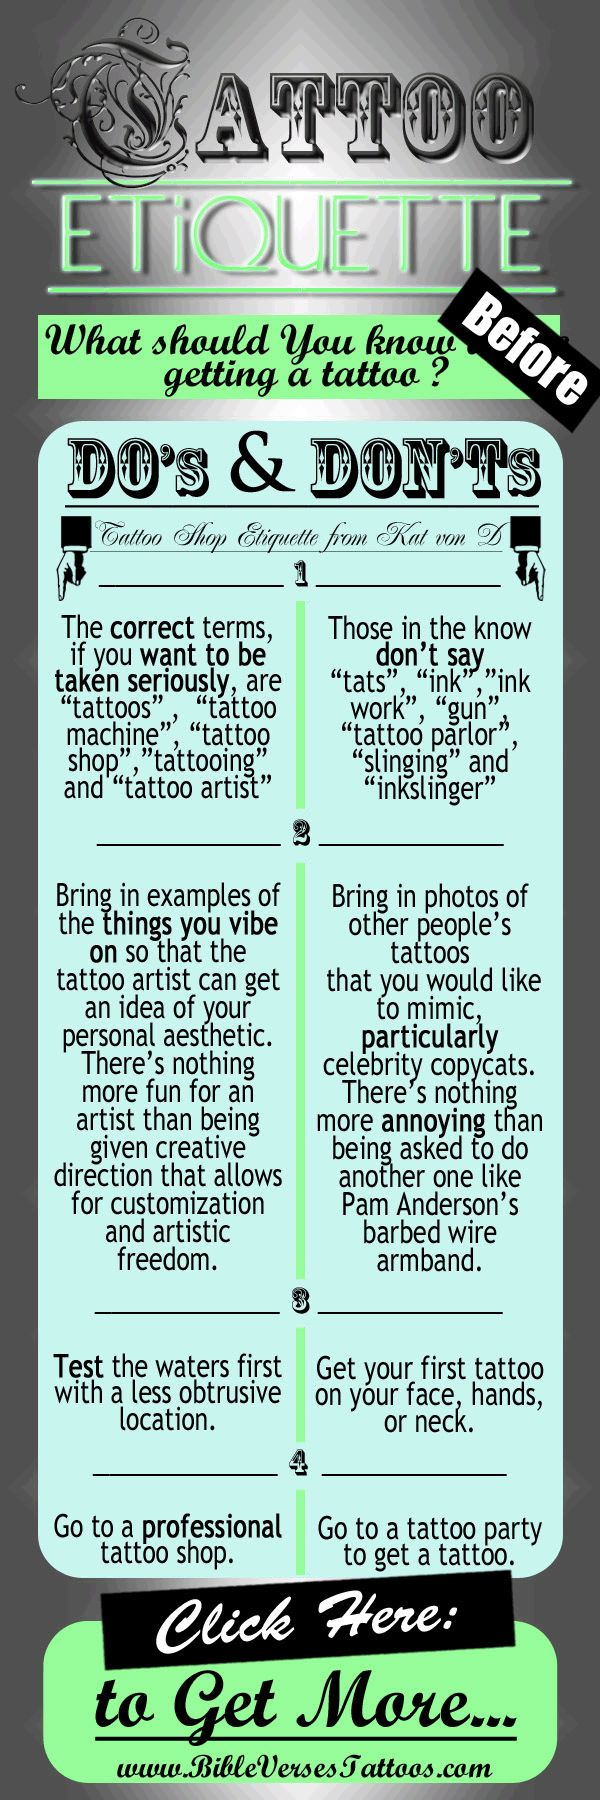 "TATTOO SHOP ETIQUETTE - from Kat Von D...  In Her 1st Book Titled:""High Voltage Tattoo"", Kat Von D of 'LA Ink' Explains that There Is a Bunch of Etiquette Guidelines You Should Keep in Mind Before Heading to the Tattoo Shop...  - - - - - - - - - - - - - - - - - - - - - - -"